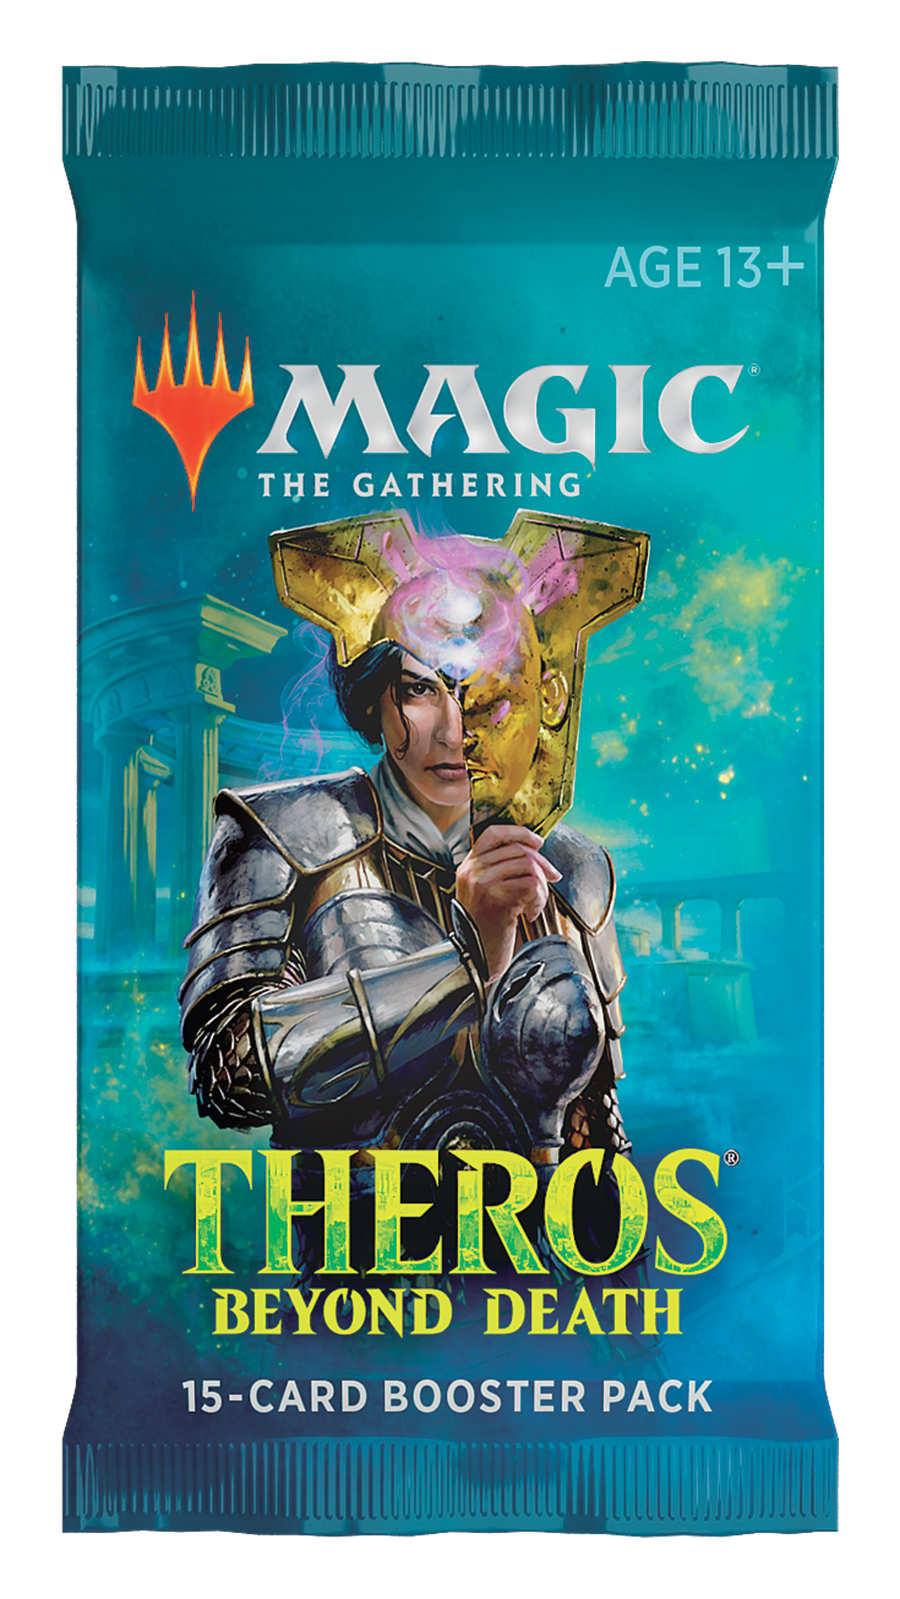 Magic The Gathering: Theros Beyond Death Single Booster (15 Cards) image